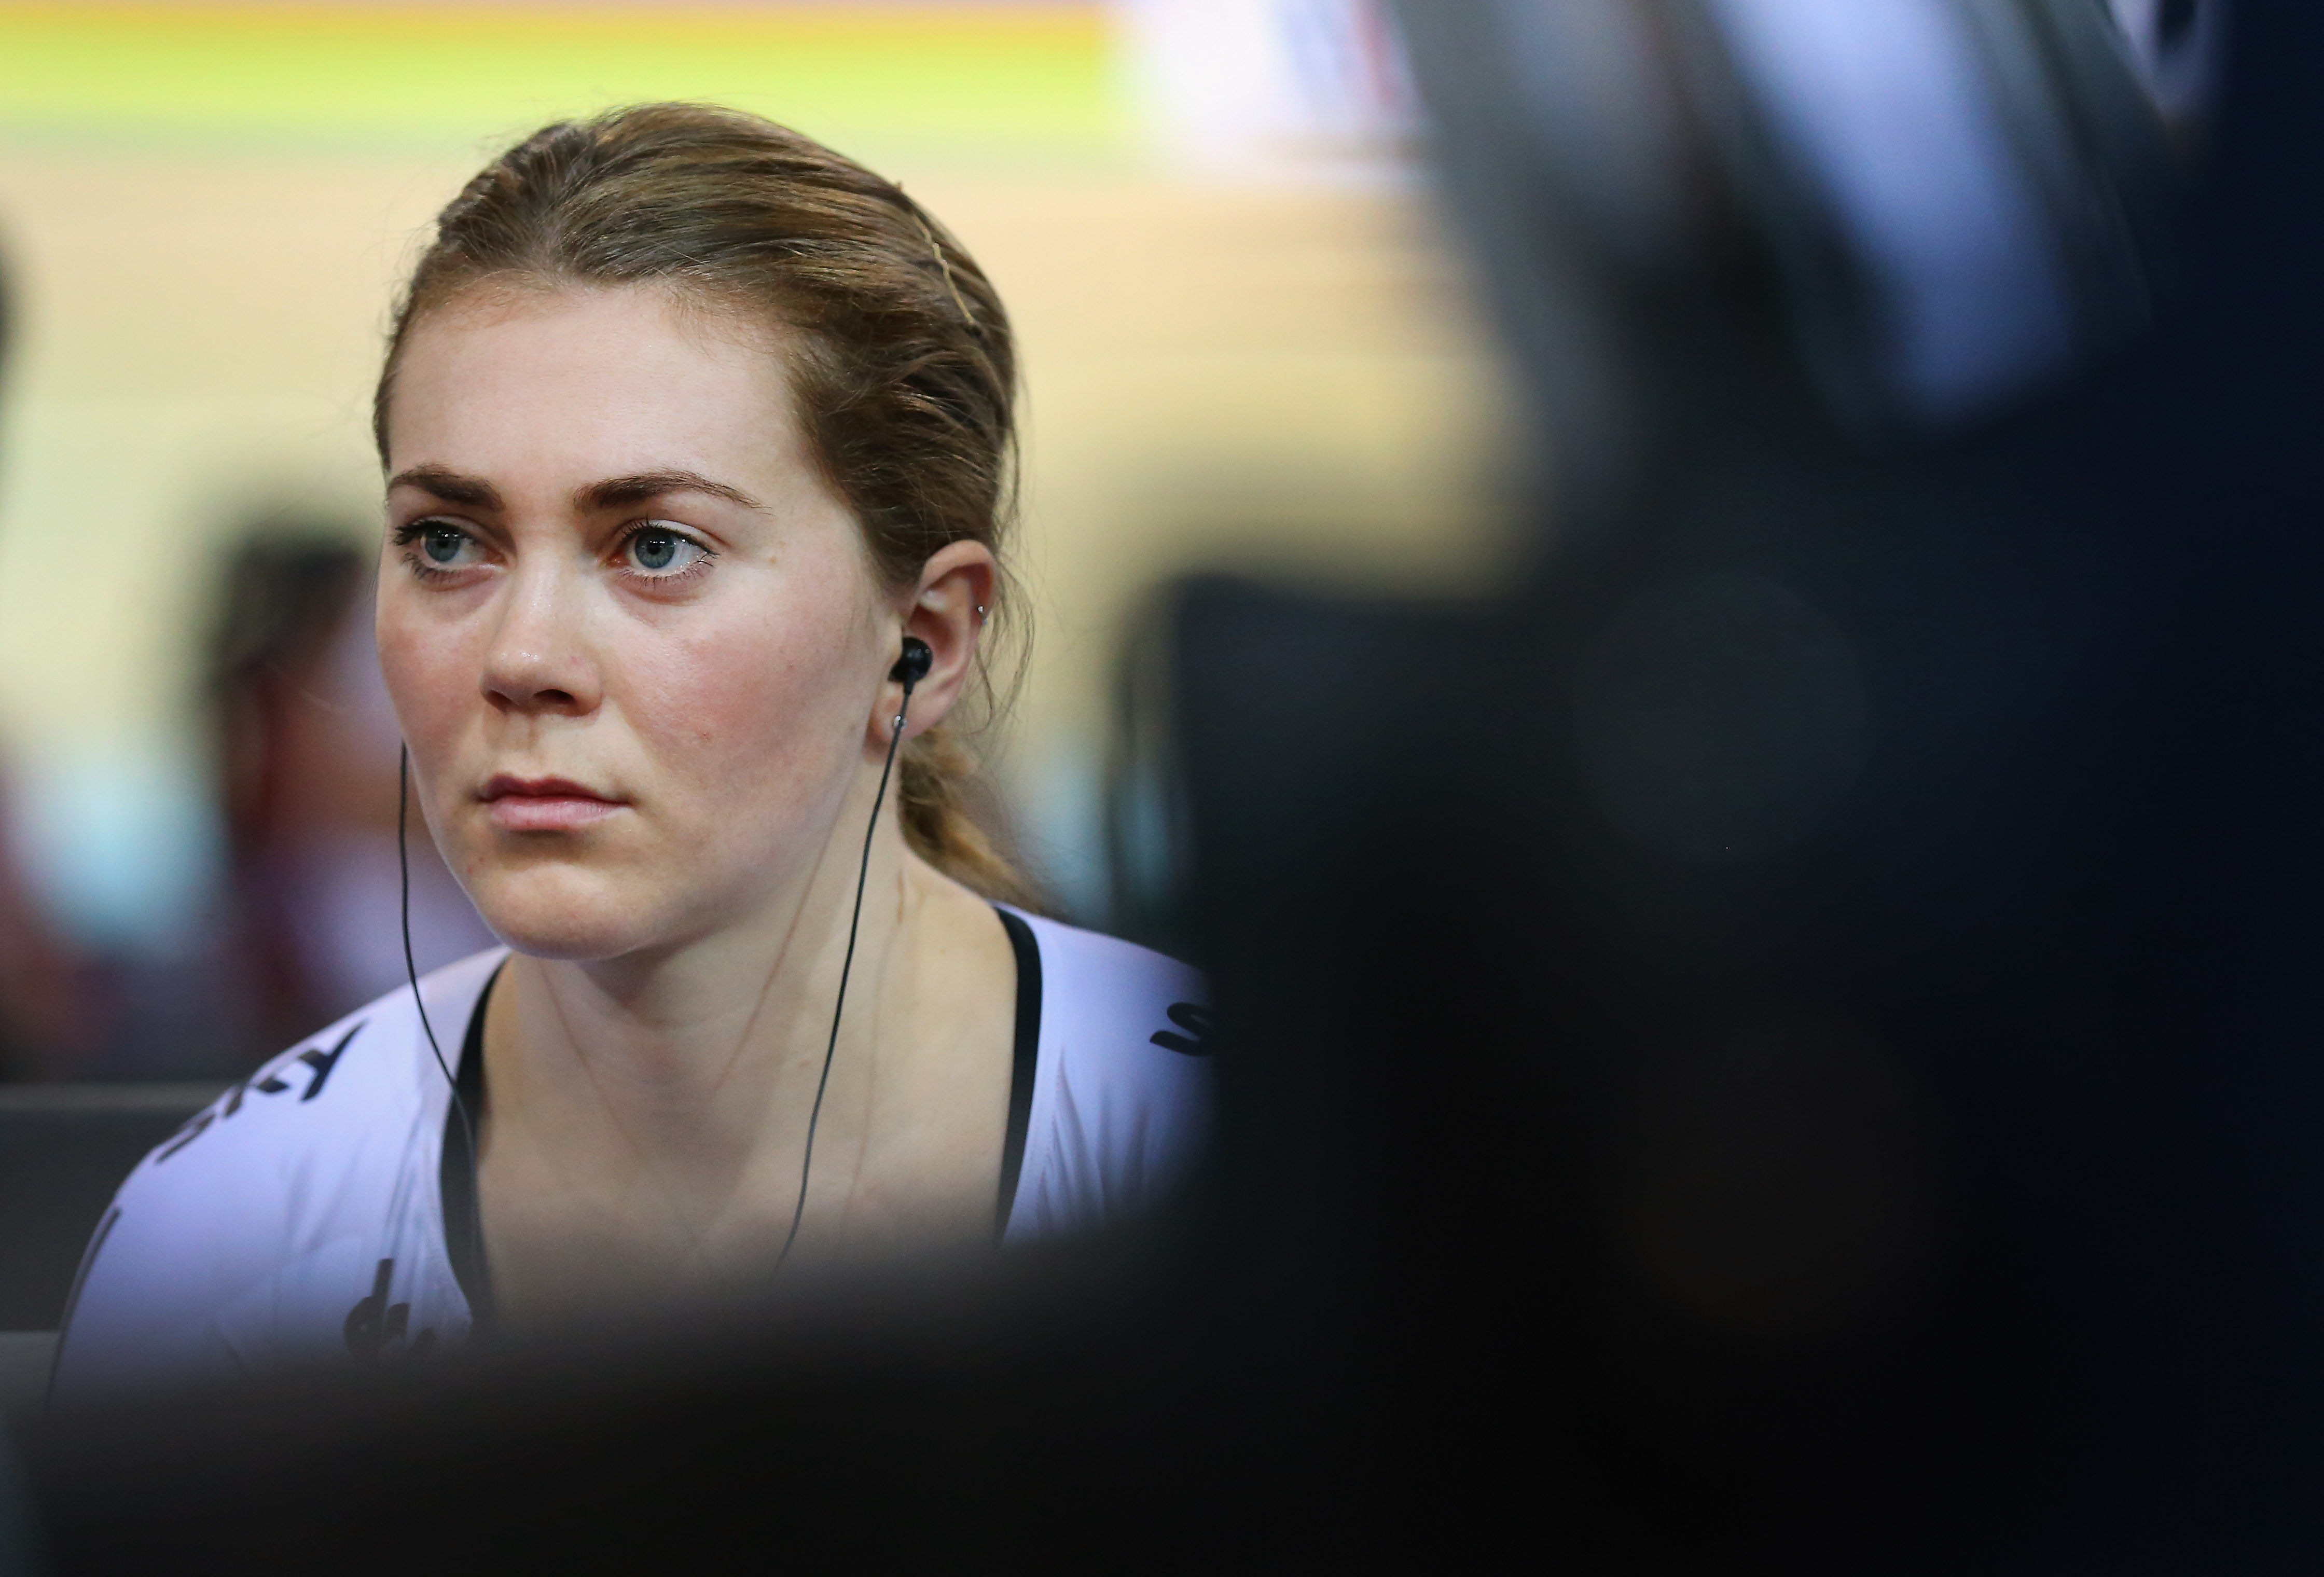 Former track sprinter Jess Varnish loses appeal in British Cycling case - Cycling Weekly